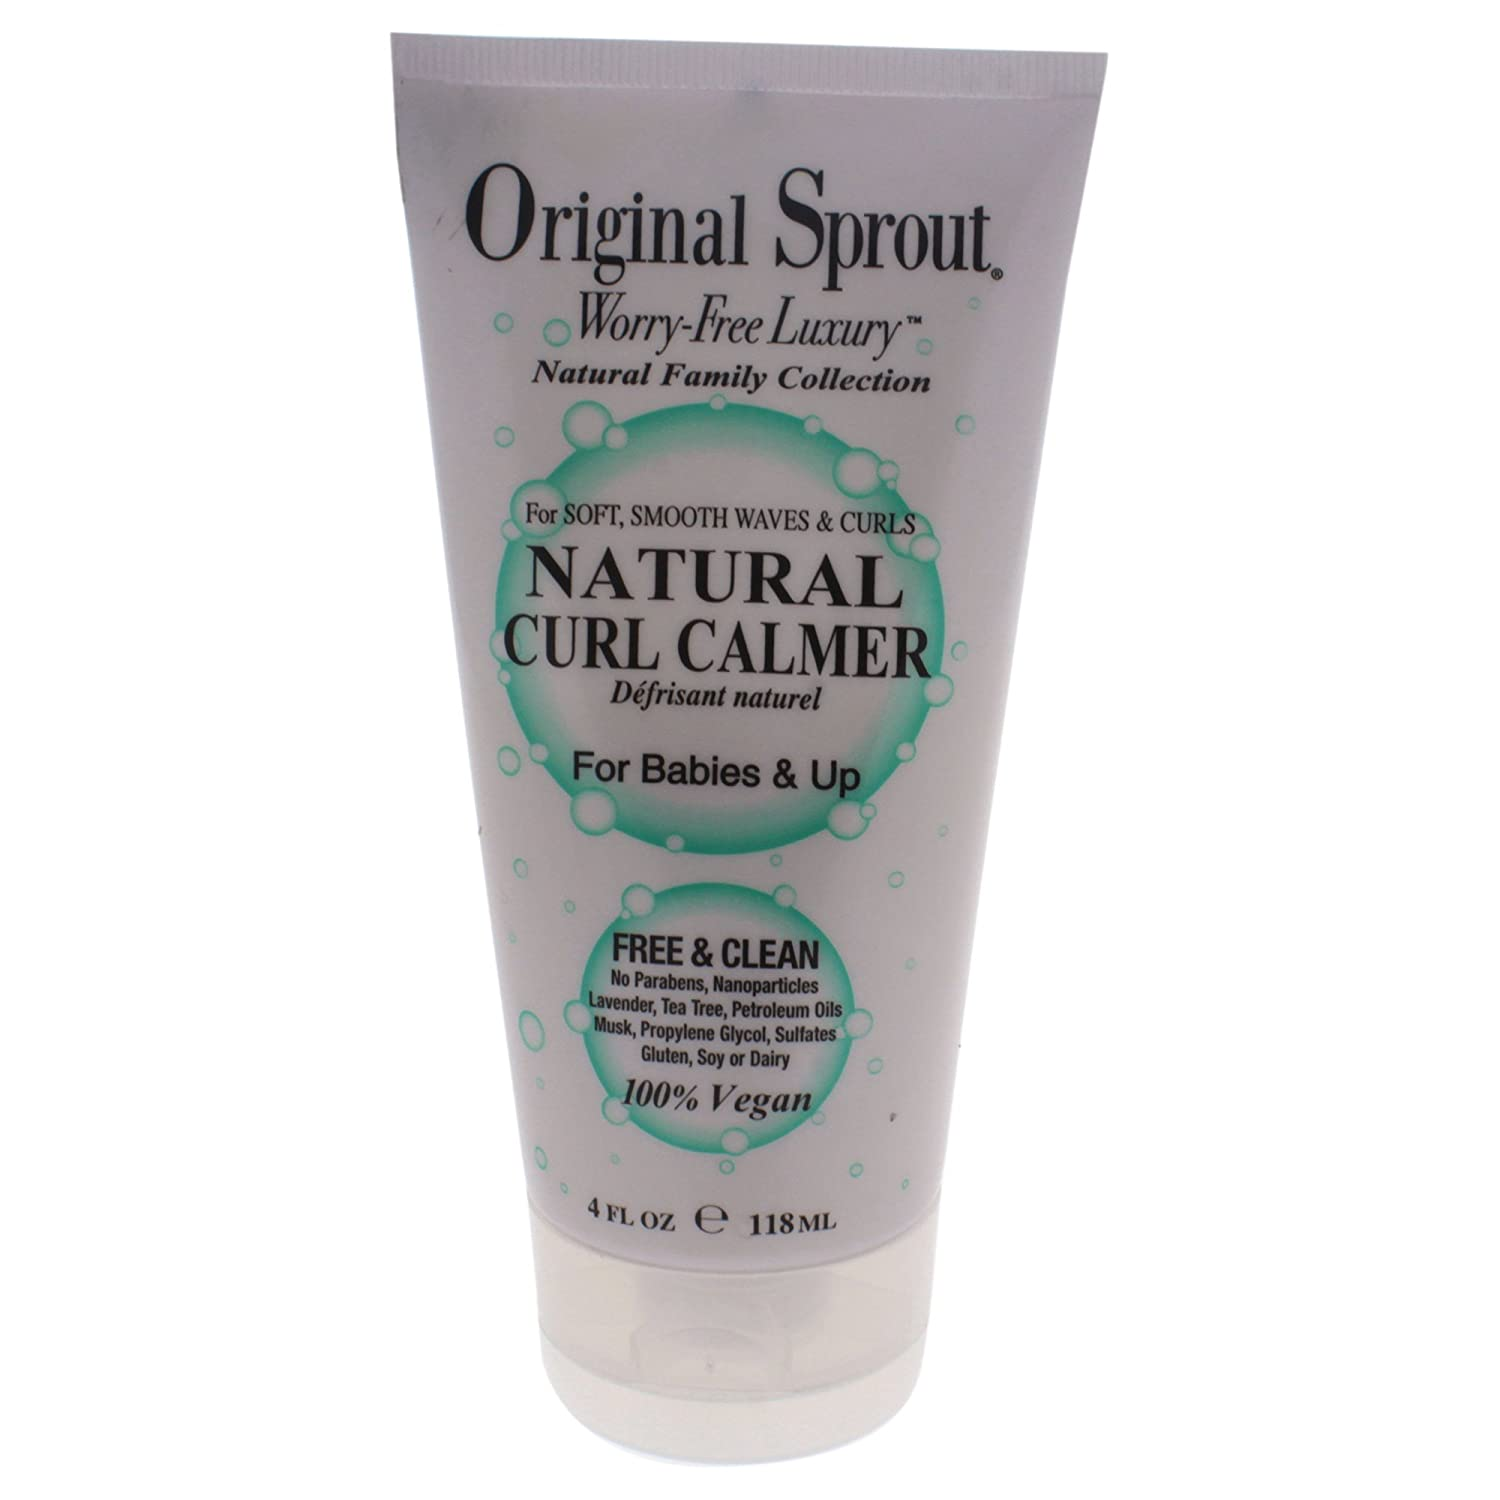 Original Sprout Natural Curl Calmer. All Natural Hair Care. Curly Hair Moisturizer and Hair Strengthener. 4 oz. 008